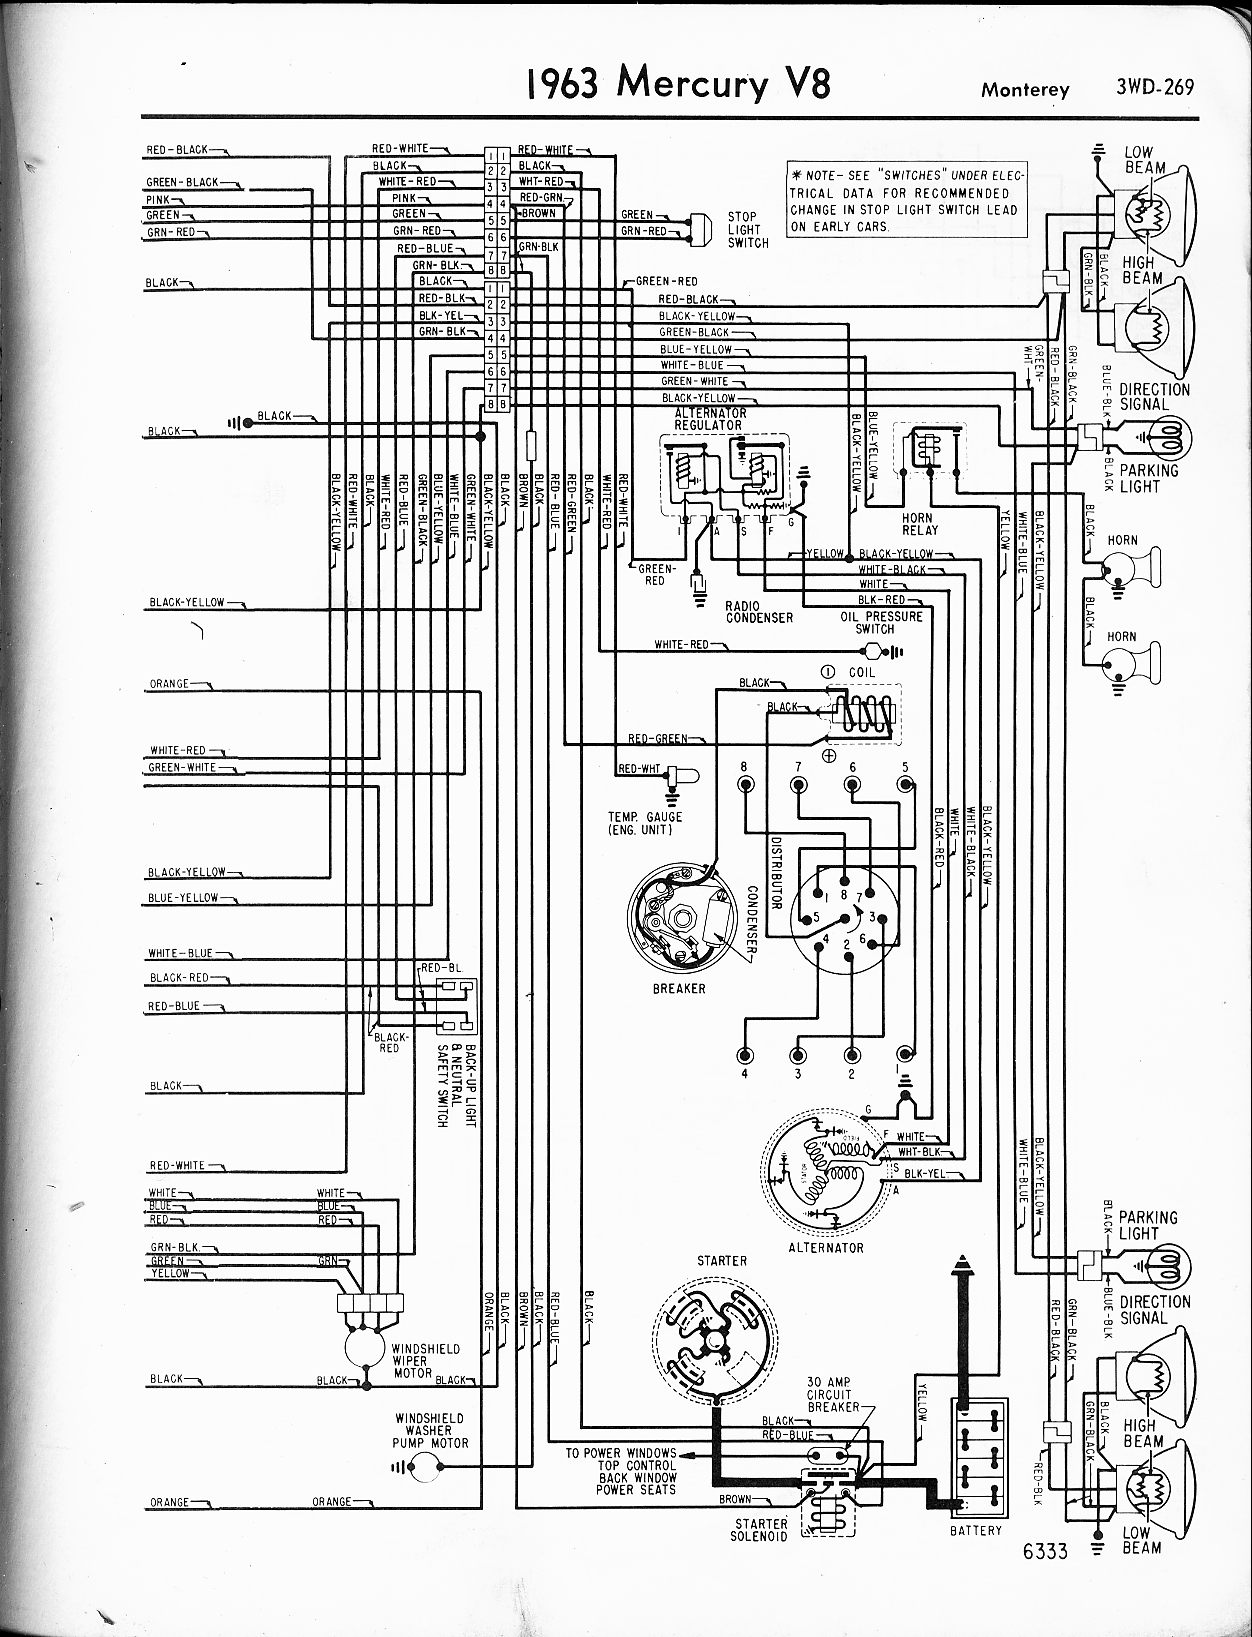 Wiring Diagram For Mercury Monterey